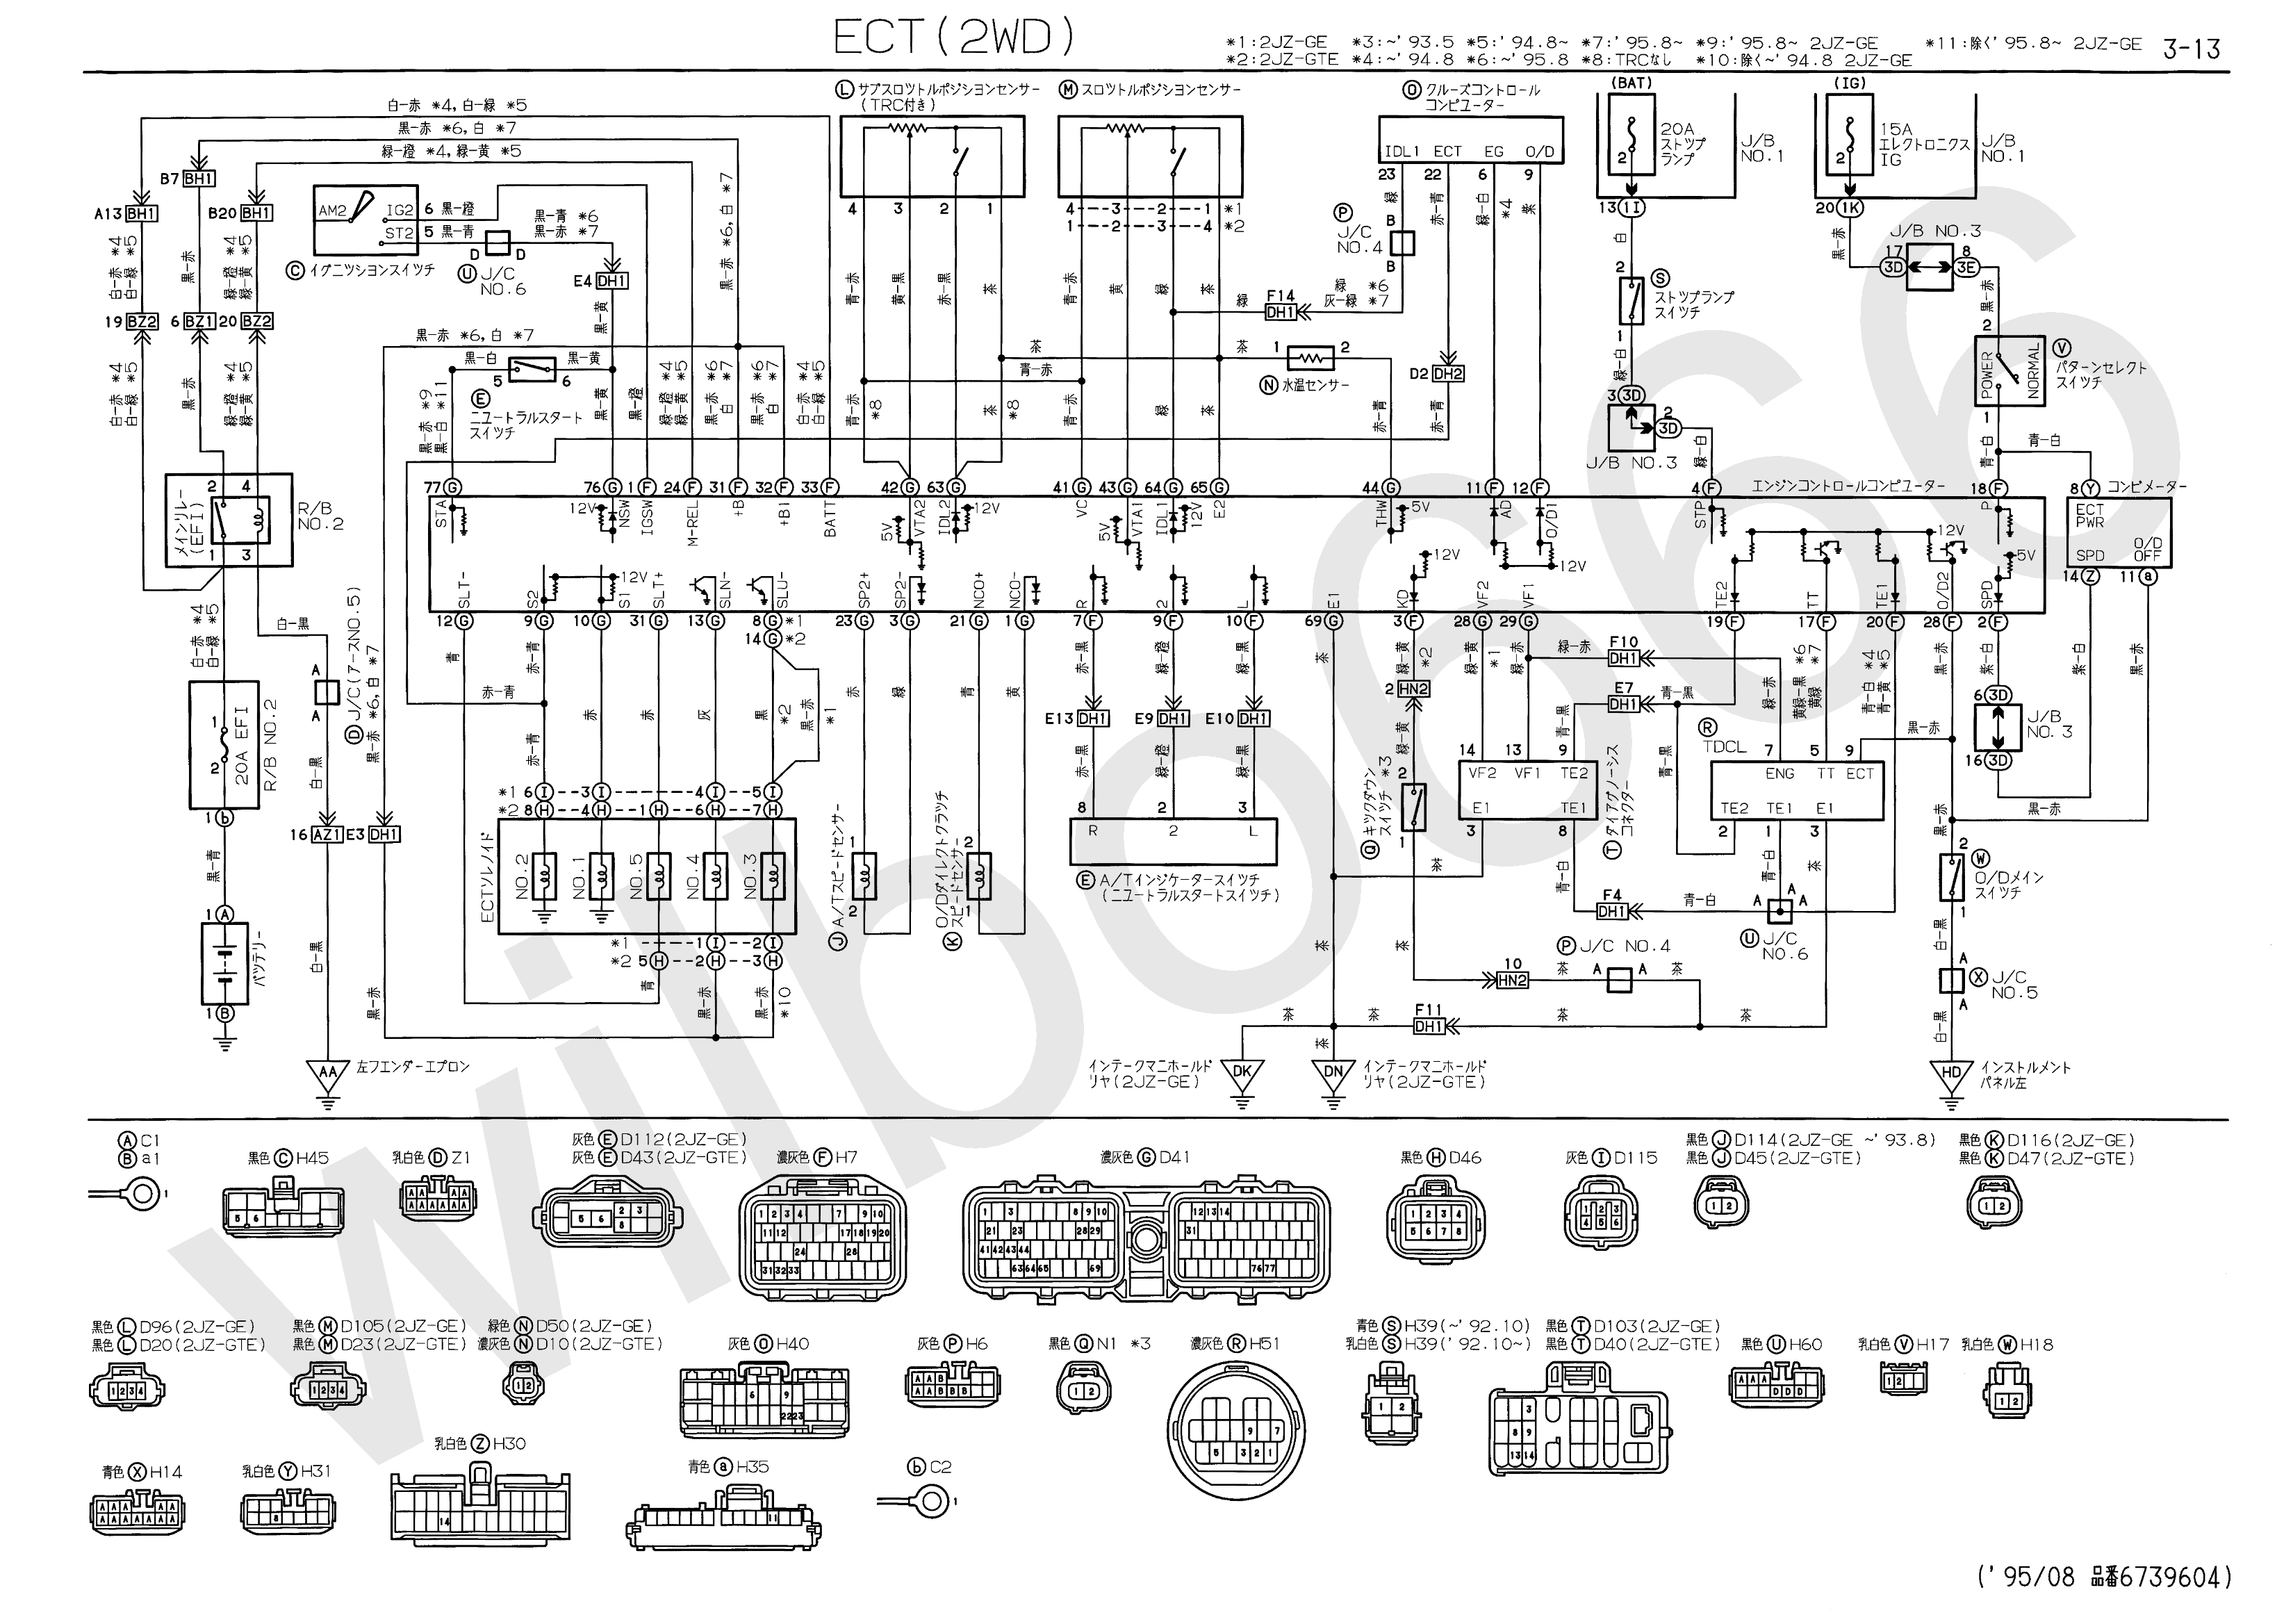 P 0996b43f8037f5d1 furthermore P 0996b43f80e64f05 besides 2013 Hyundai Elantra Engine Diagram further Kia Optima Wiring Diagram besides RepairGuideContent. on 2005 hyundai elantra oxygen sensor location